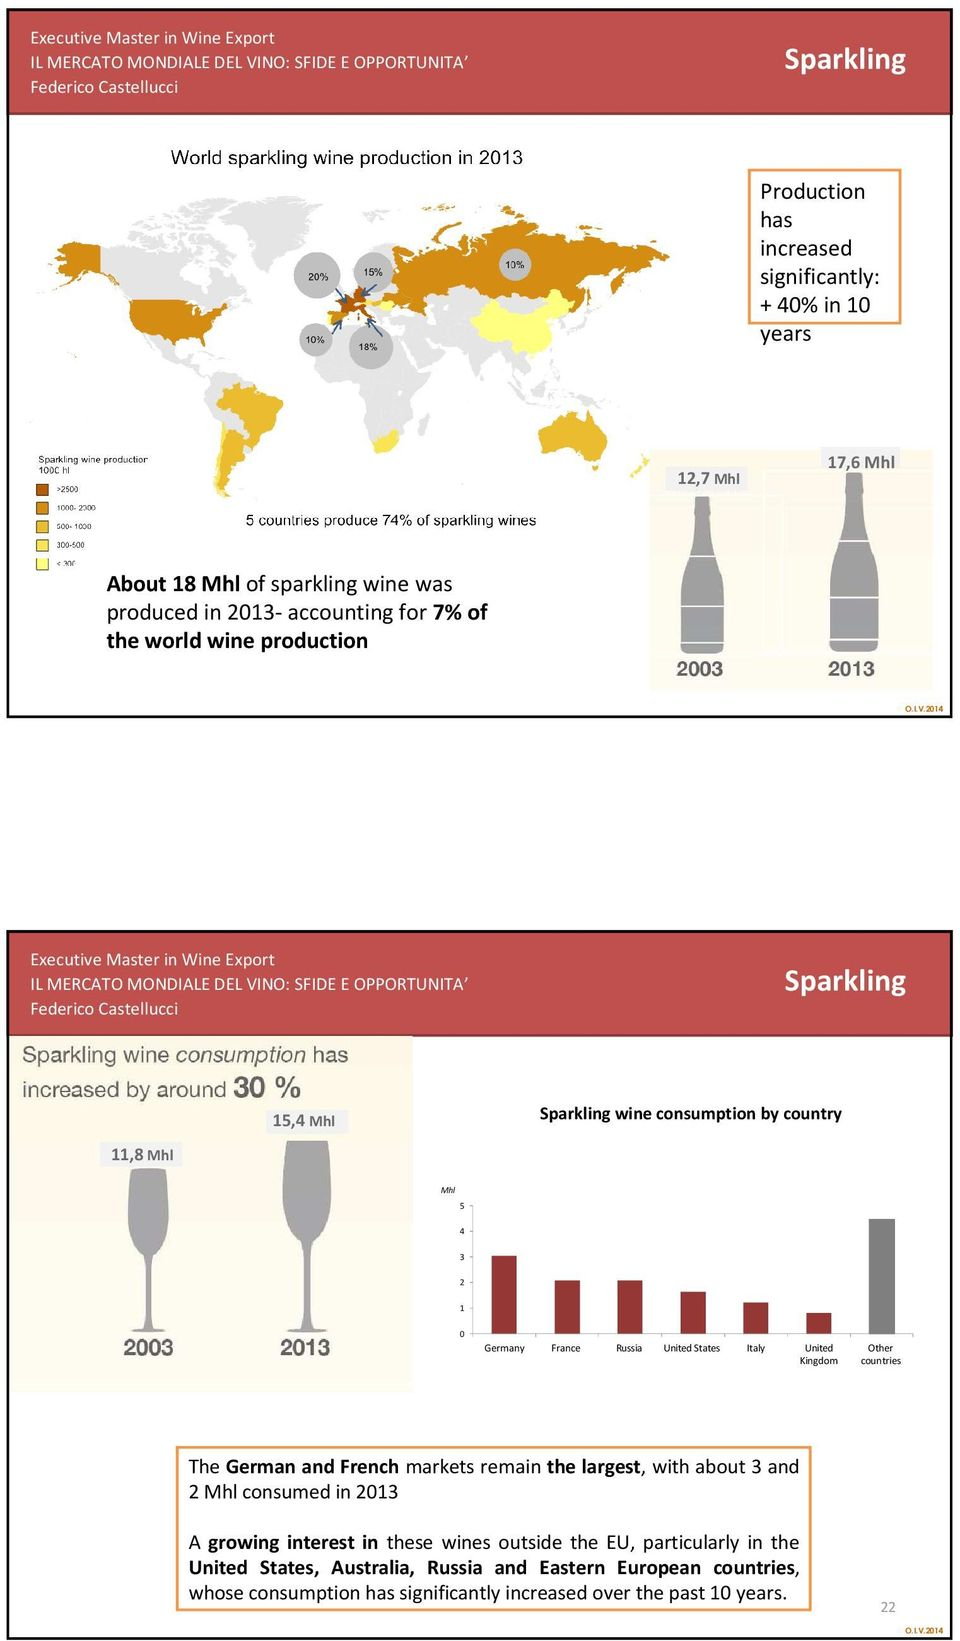 wineproduction 1 Sparkling 15, Sparkling wine consumption by country 11,8 5 3 1 Germany France Russia United States Italy United Kingdom Other